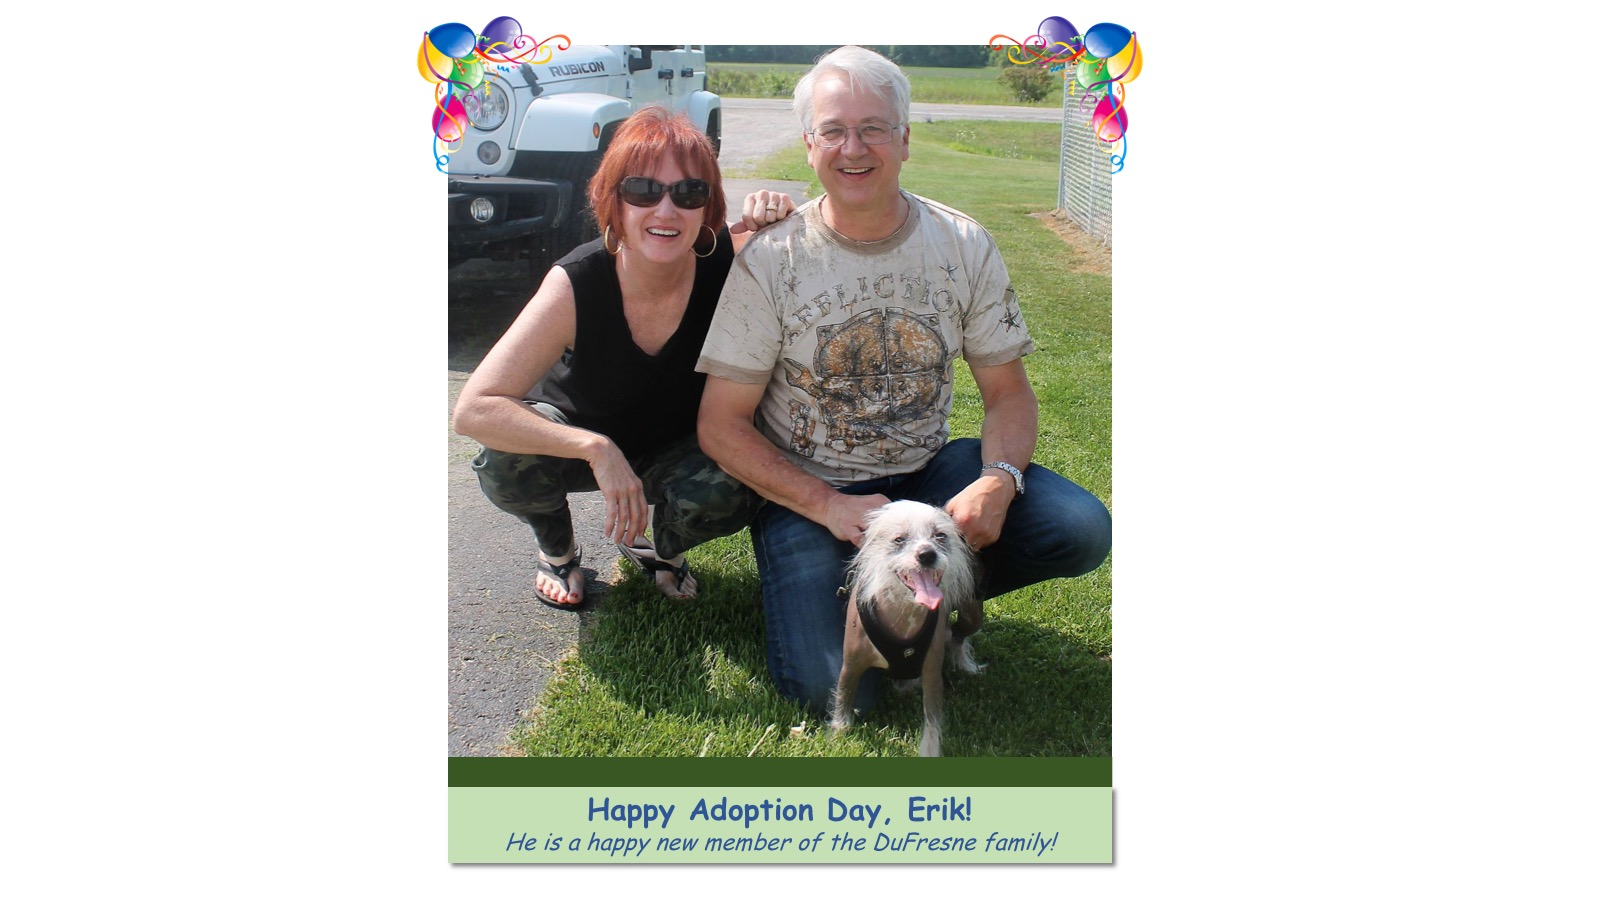 Erik_Adoption_Photo_2018.jpg